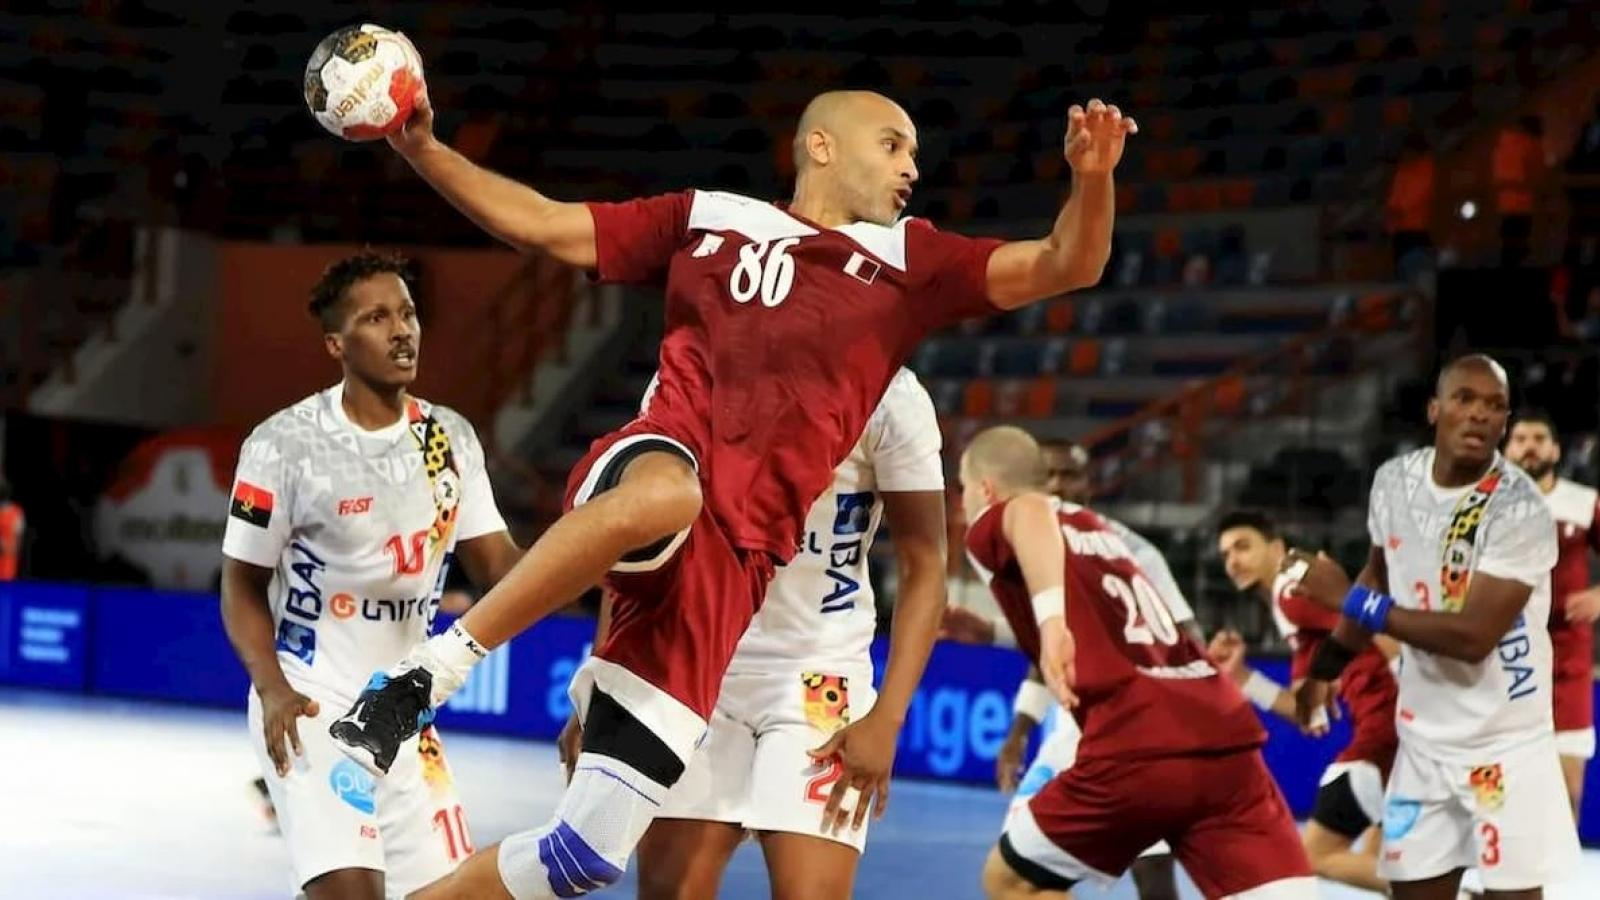 Qatar starts 2021 IHF Men's Handball World Championship with victory over Angola